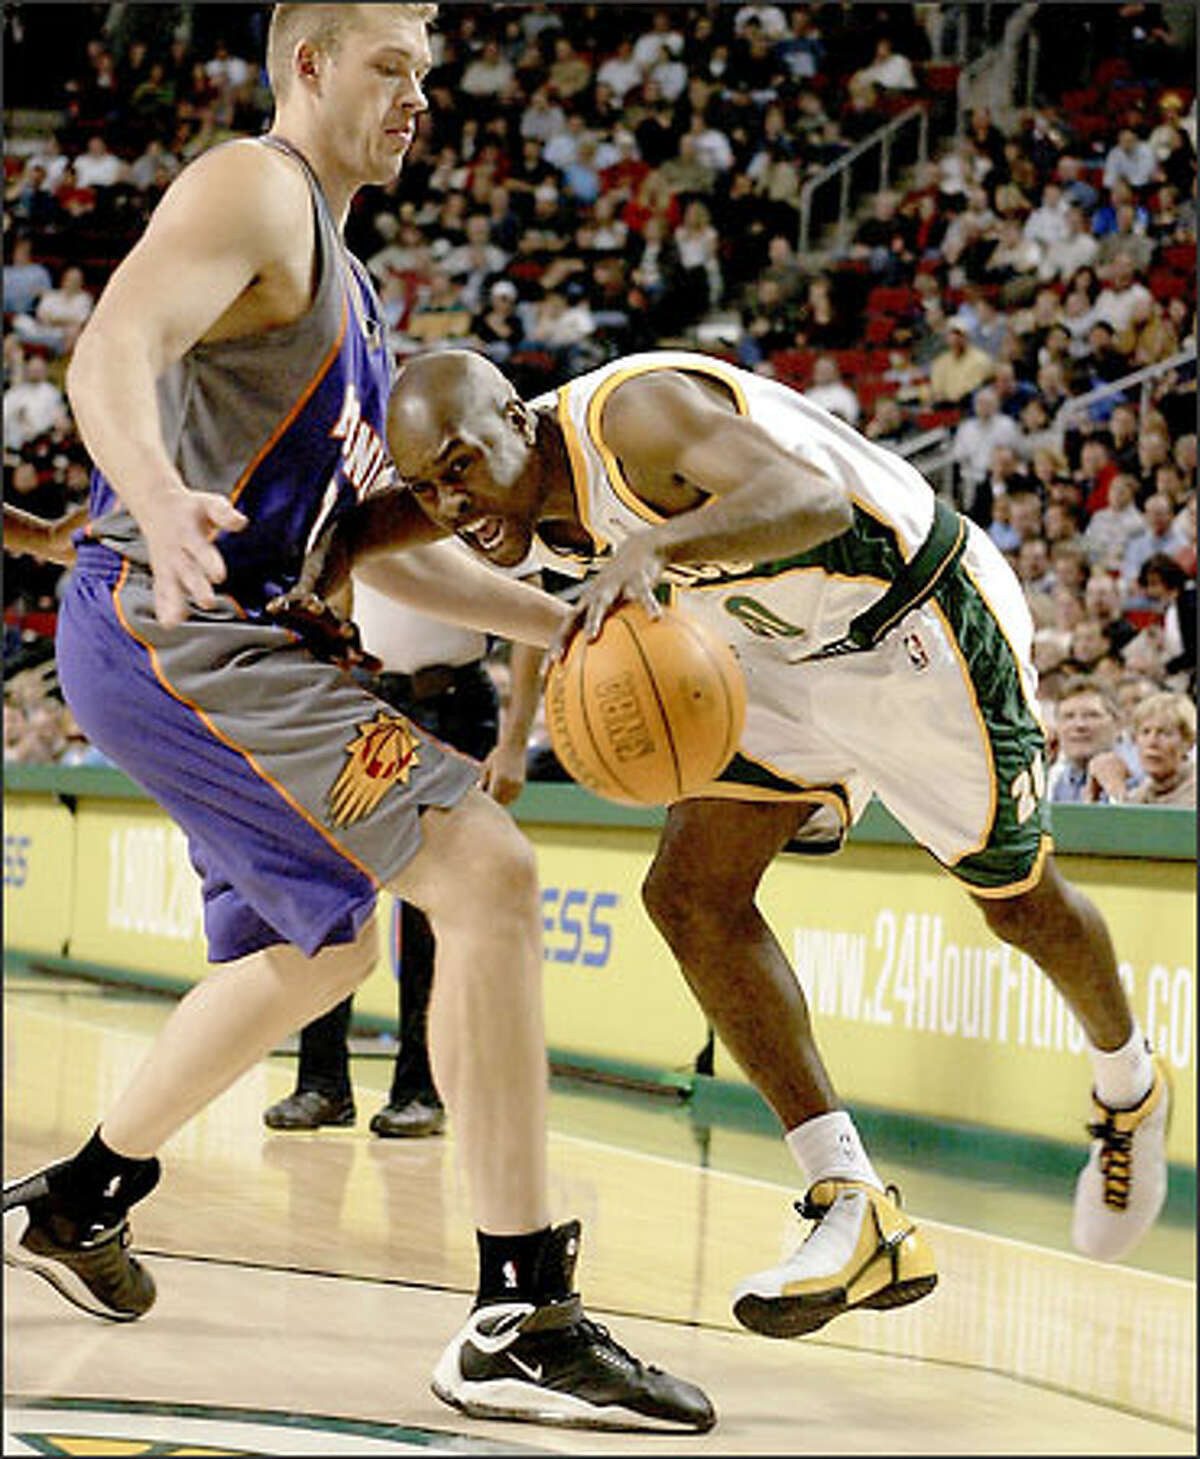 Sonics point guard Gary Payton drives around the Suns' Jake Tsaklidis last night at KeyArena. Payton scored 20 points, and his three-pointer with 1:19 left clinched the victory after Phoenix had cut the lead to six points.